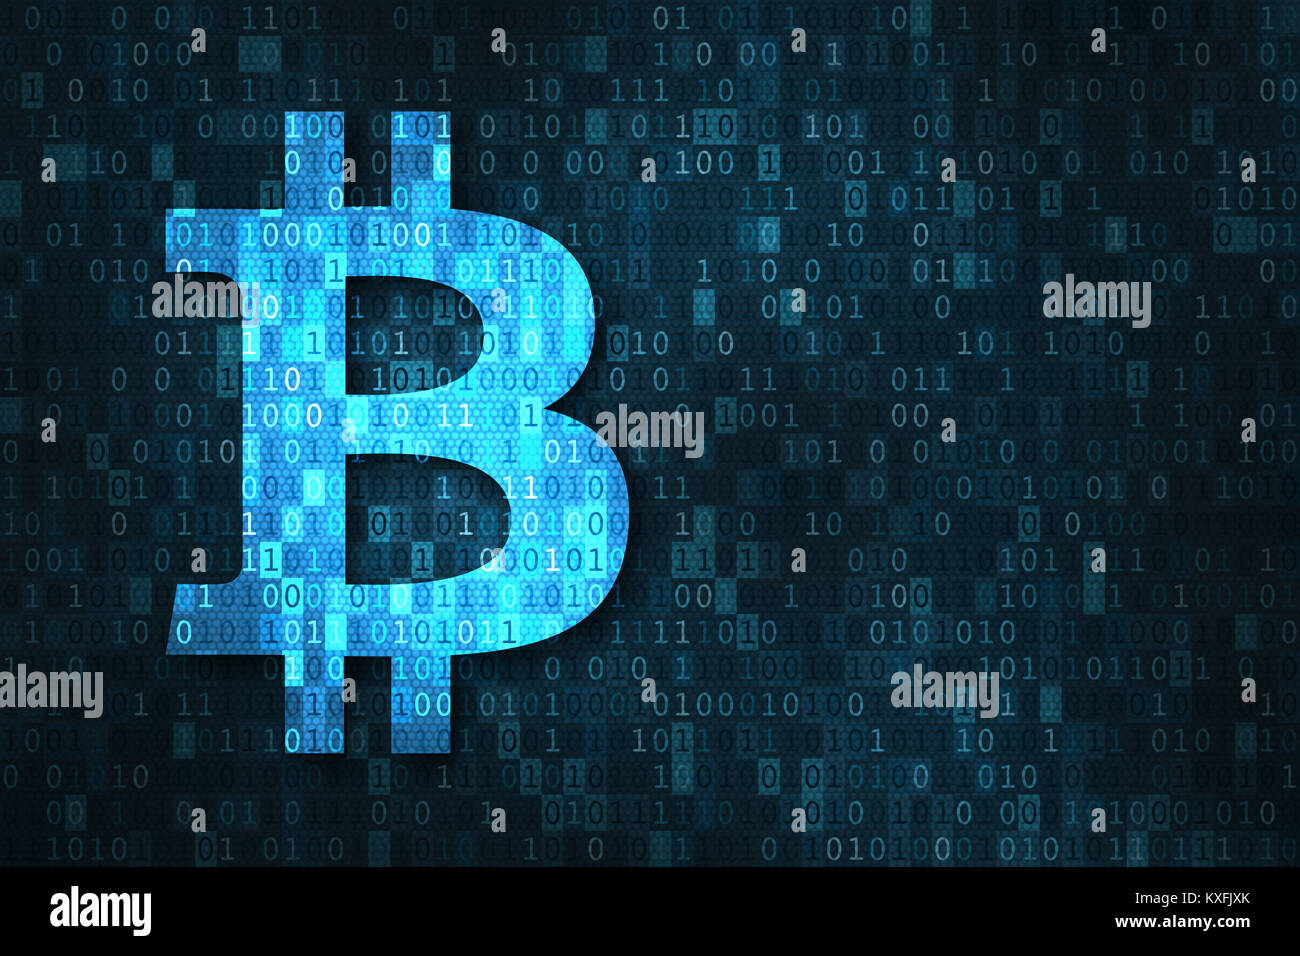 Bitcoin cryptocurrency based on blockchain technology concept with BTC currency symbol over binary digits code matrix - Stock Image